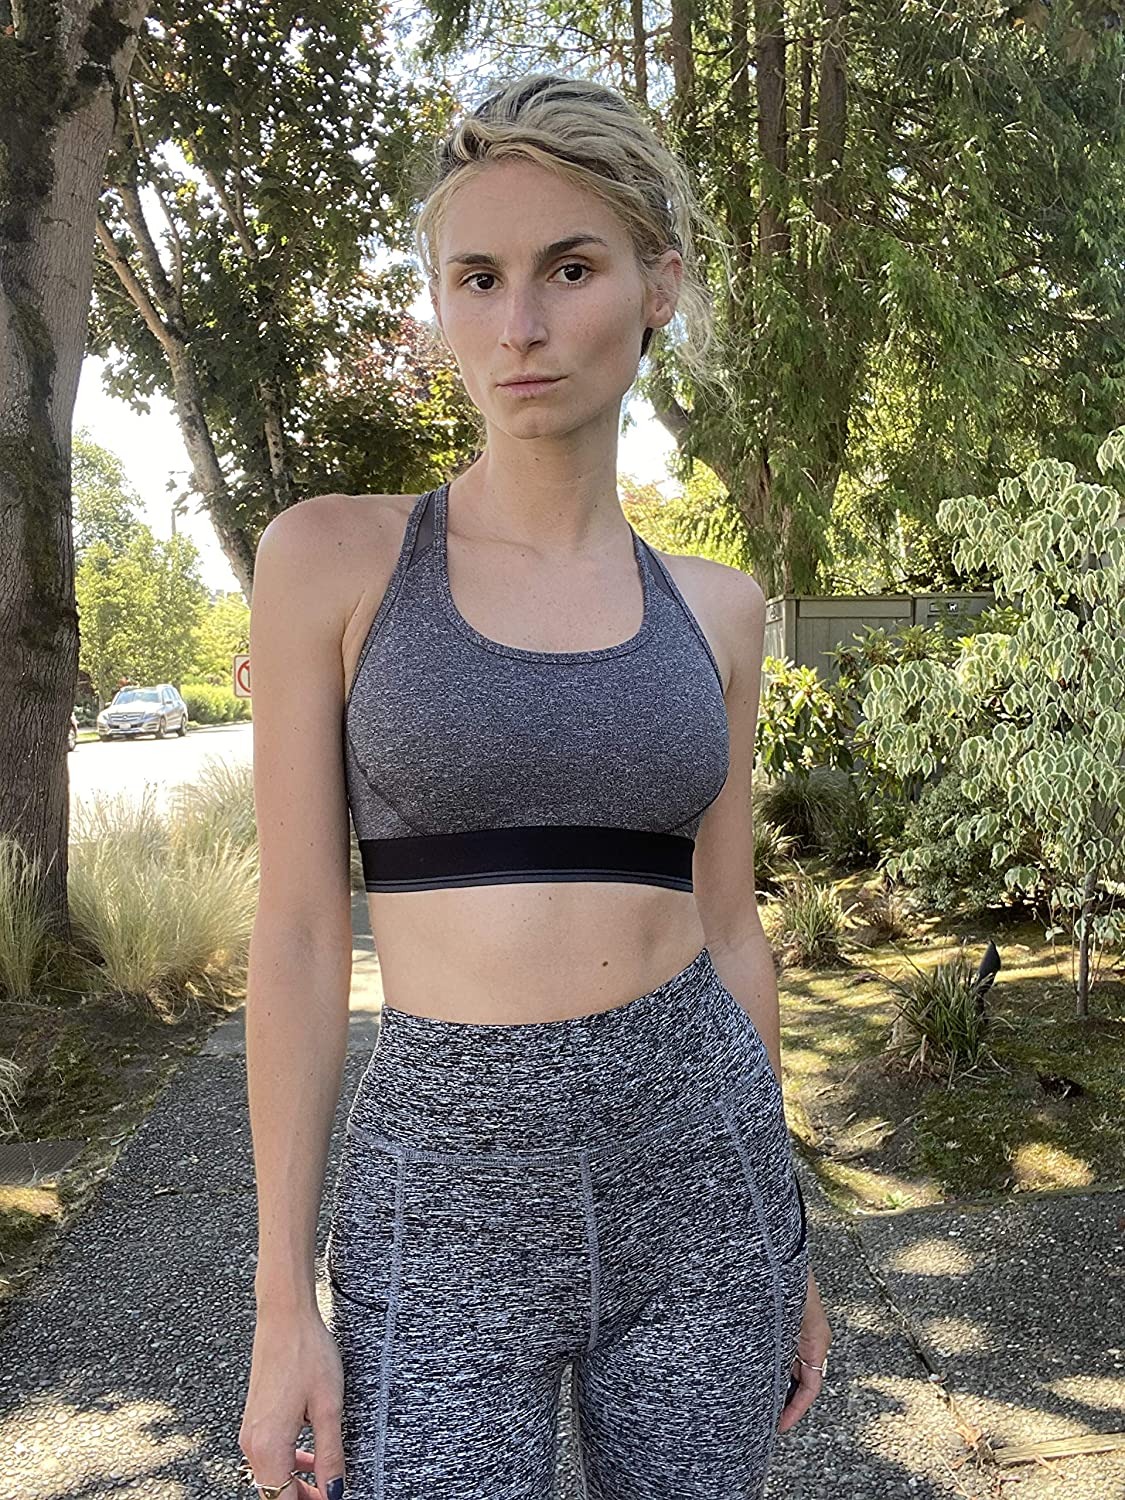 Essentials Women's Control Tech Racerback Sports Bra with Power Mesh Back: Clothing